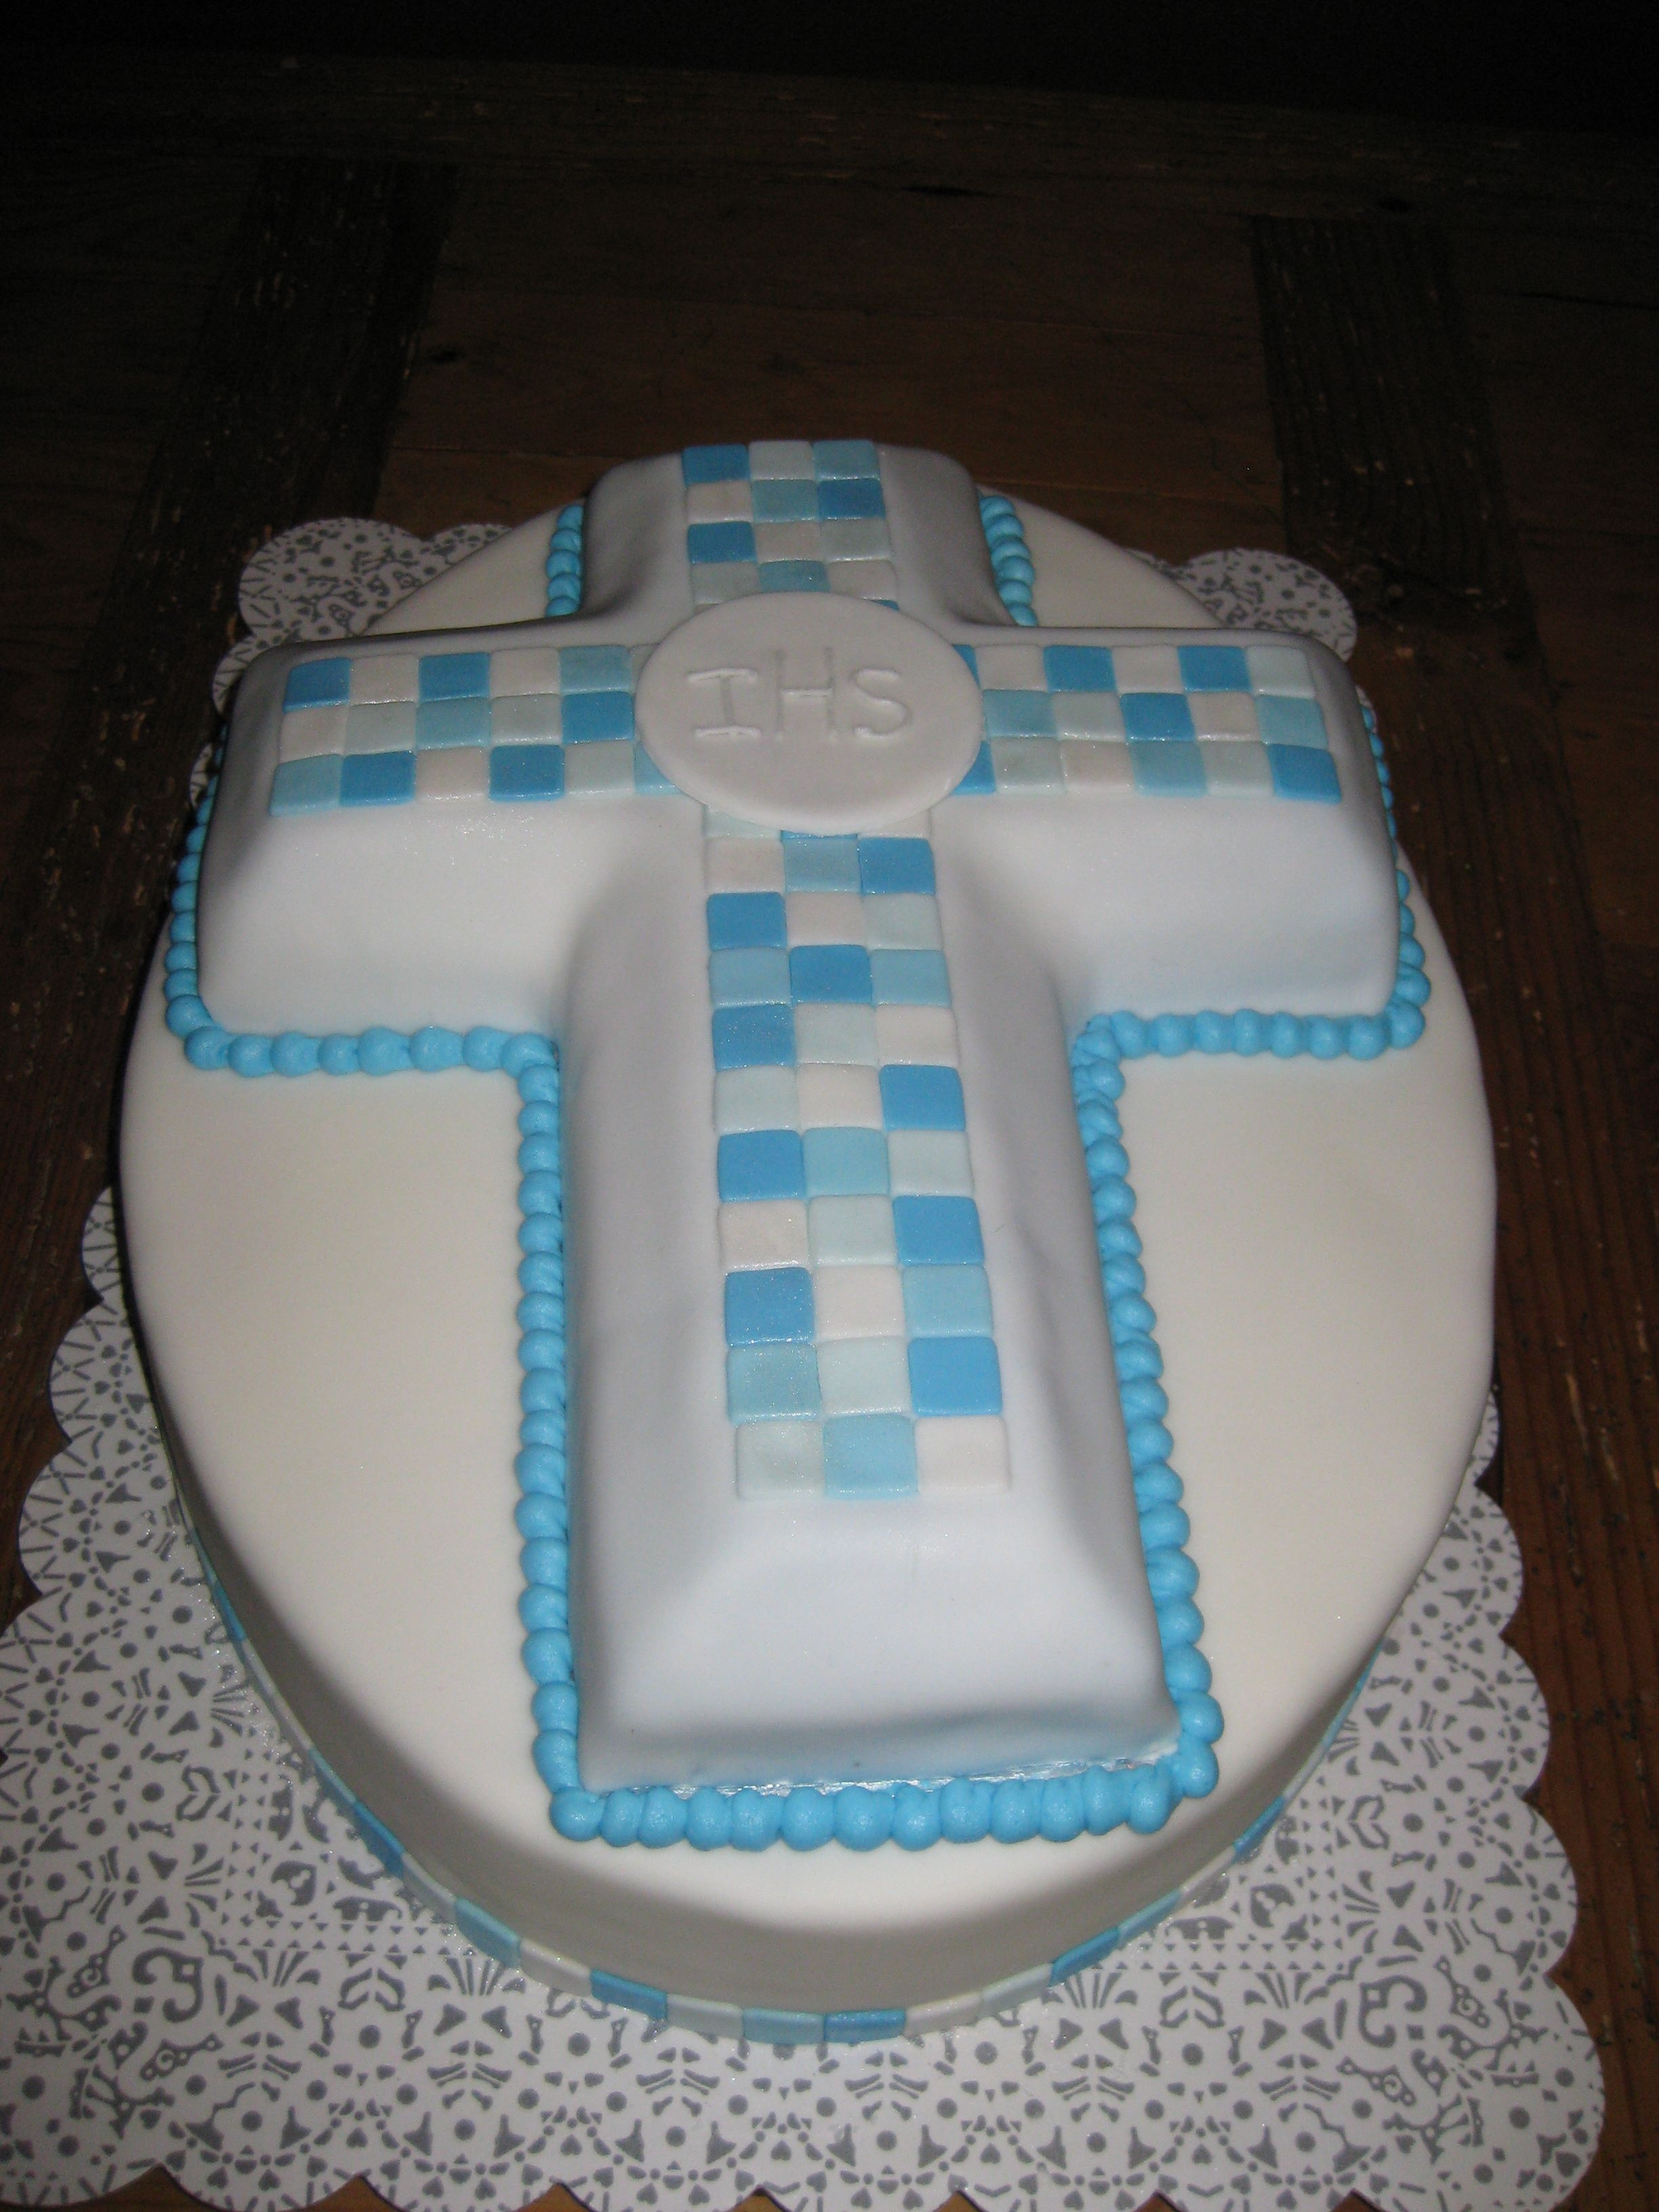 Cross Cake decorated with fondant. Blue tiles accented with shimmer dust. Made for First Holy Communion.